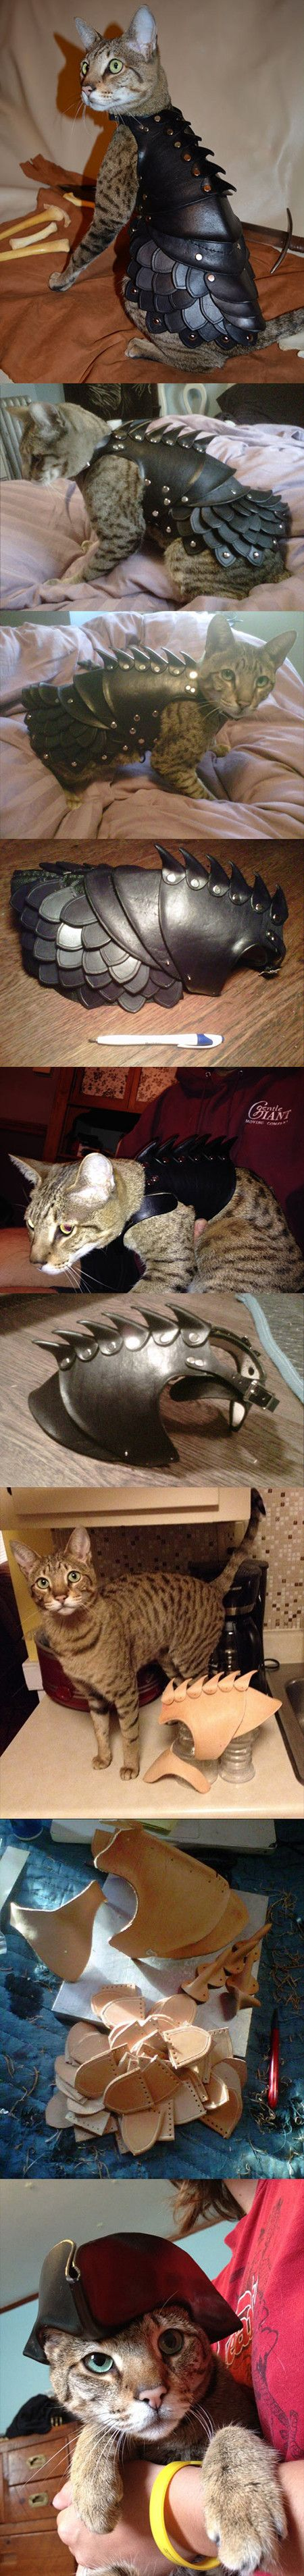 "You gotta love crazy cat people, if only for the entertainment value. You're looking at a handmade $500 Cat Battle Armor by an internet who goes by the name of ""schnabuble""."